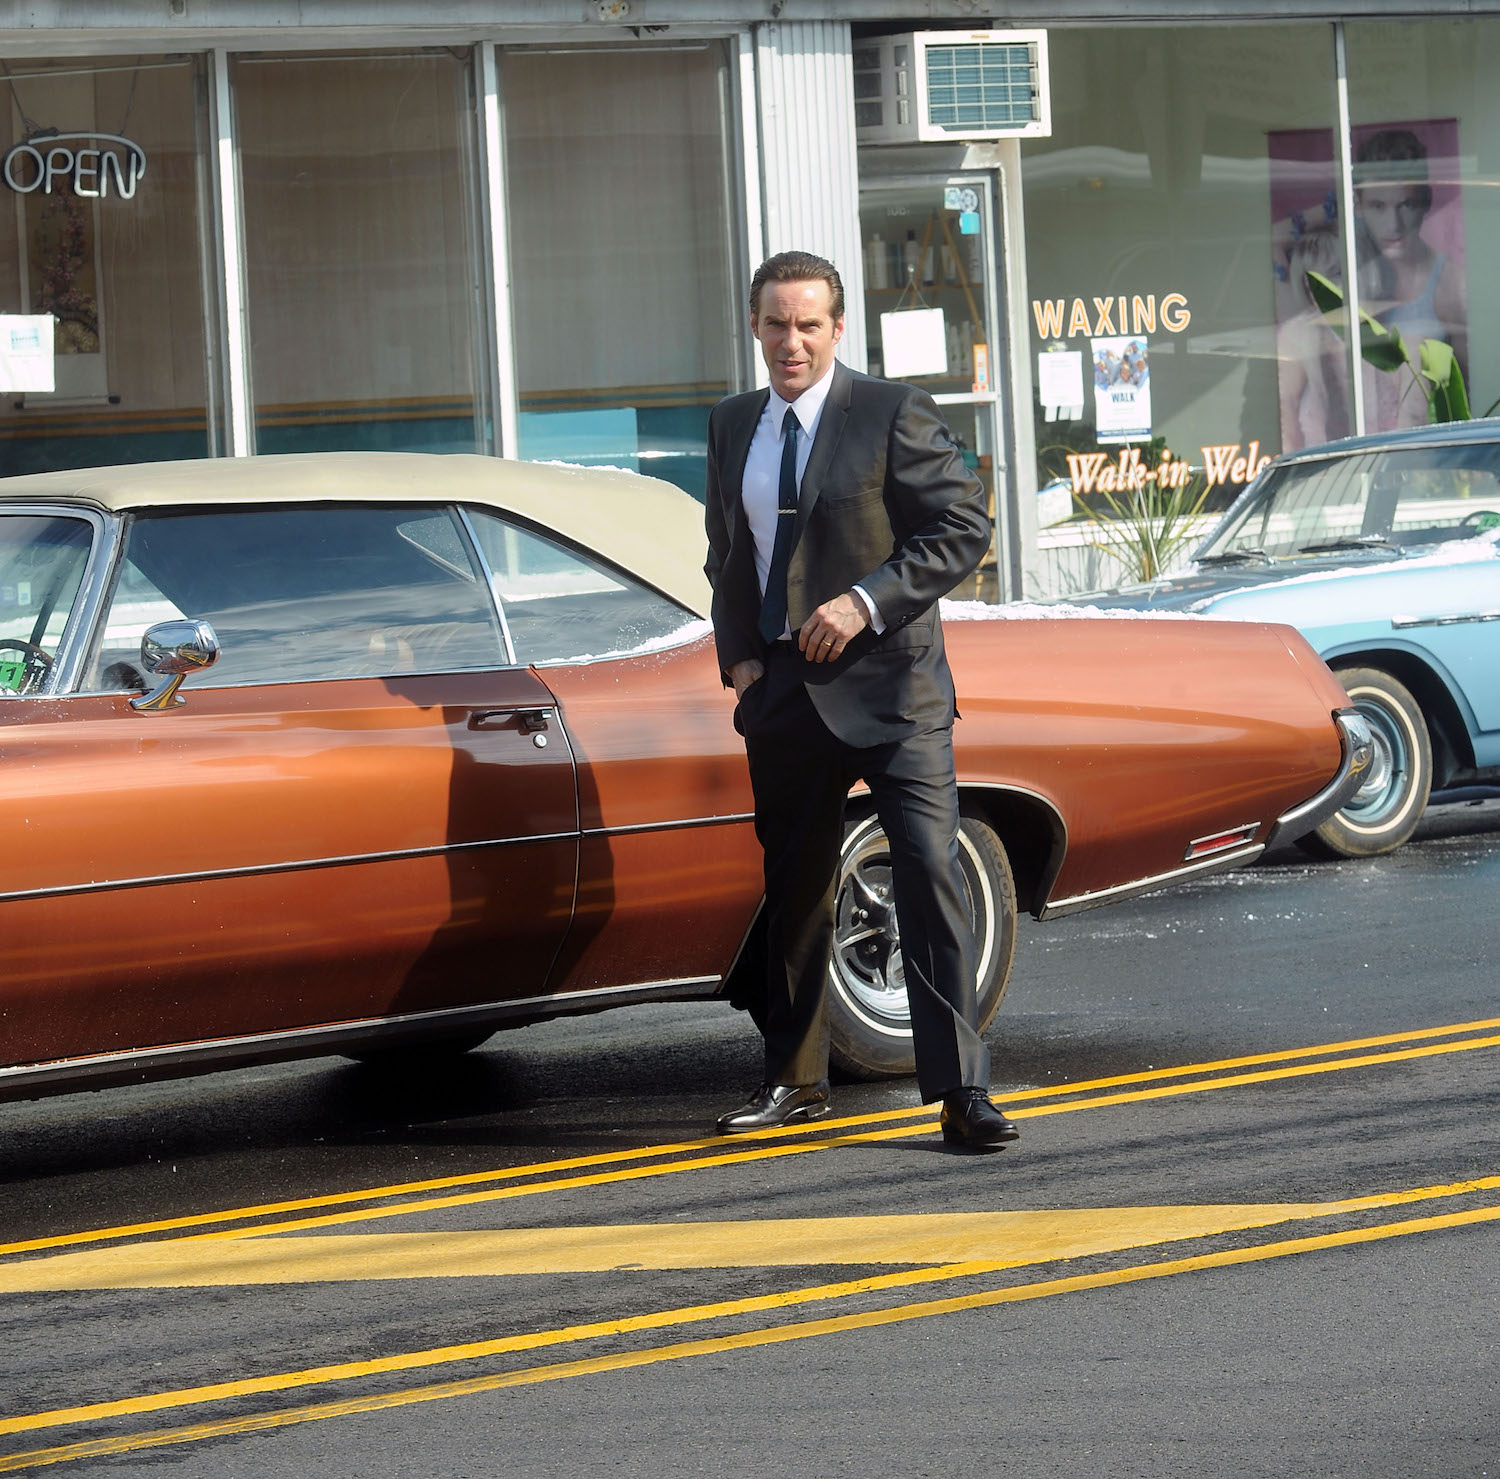 1971 Buick Centurion and actor Alessandro Nivola on the set. This is one of Dickie Moltisanti's Cars in the Many Saints of Newark Sopranos Prequel | Bobby Bank/GC Images